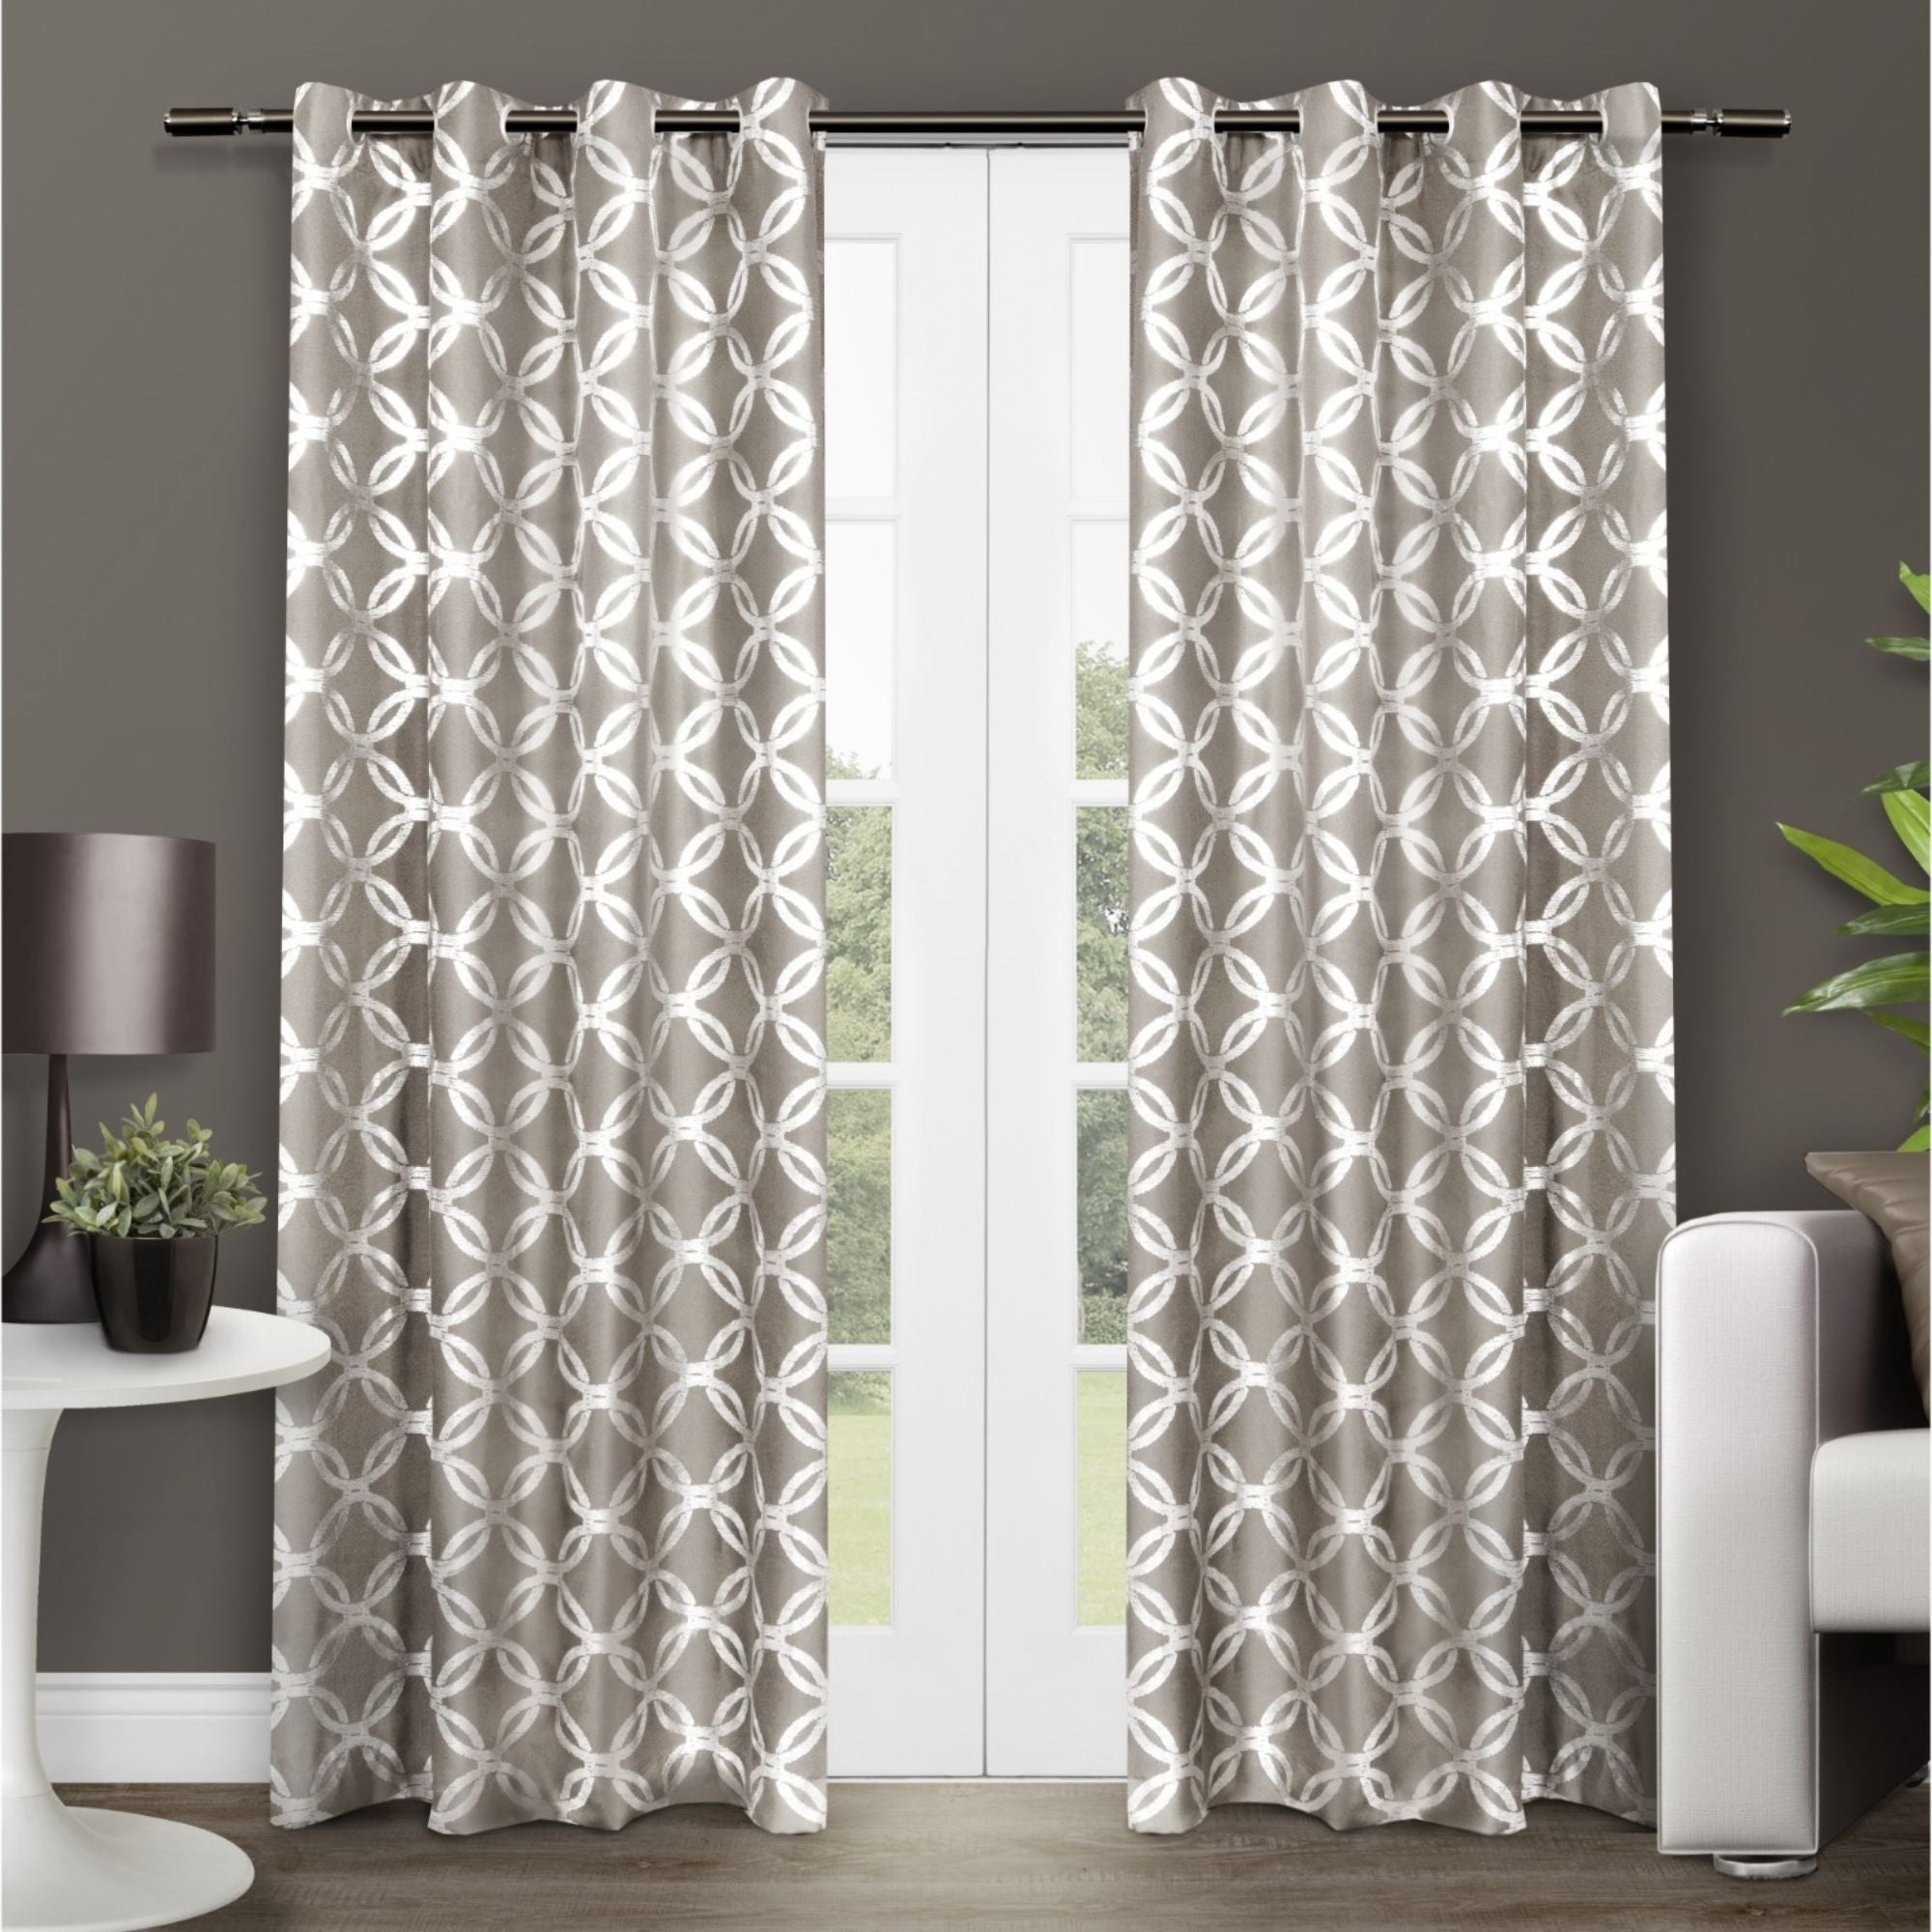 The Curated Nomad Duane Jacquard Grommet Top Curtain Panel Pairs Inside Most Recently Released The Curated Nomad Sloat Metallic Geometric Grommet Top Curtain Panel Pair (View 2 of 21)